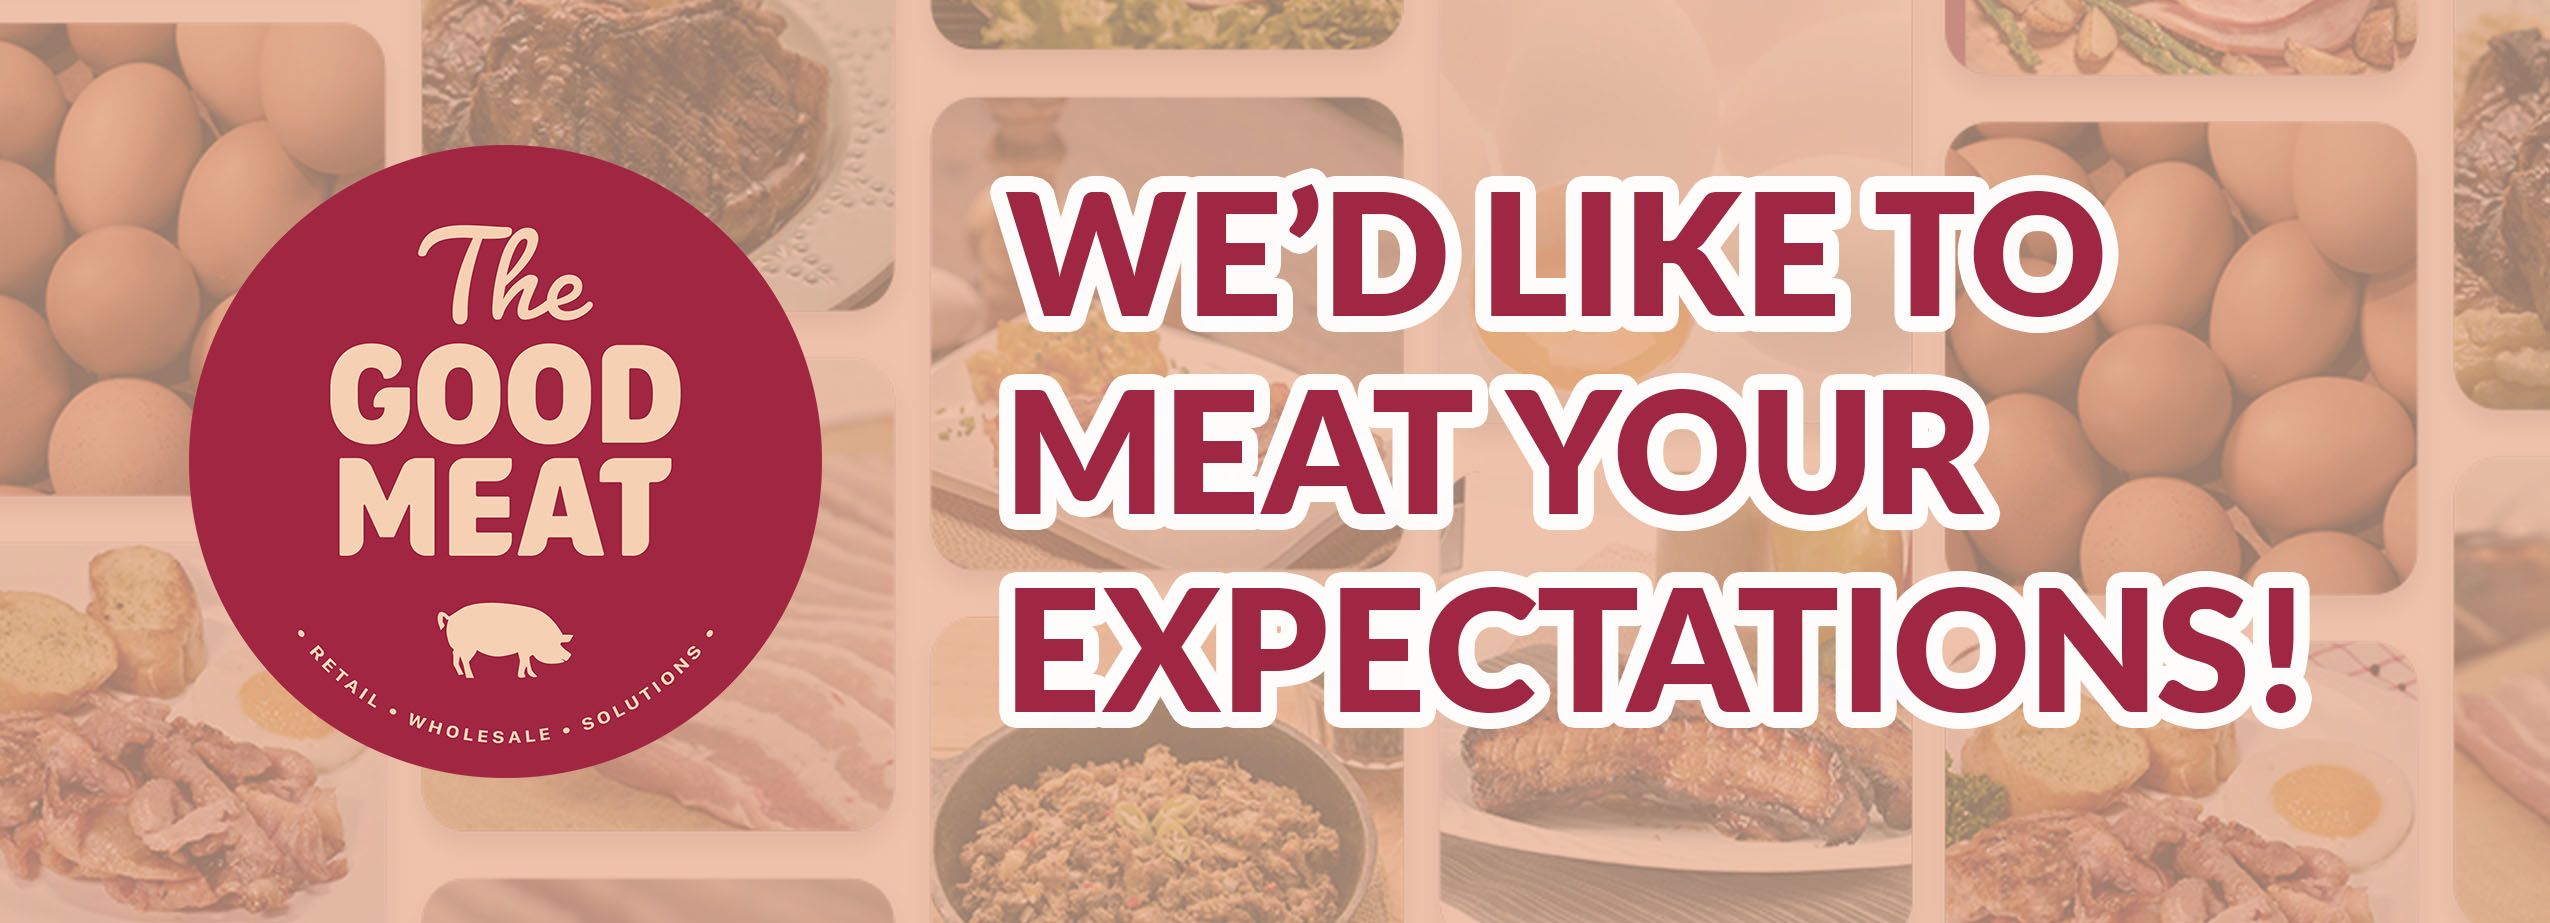 The Good Meat Online Shop Feedback Survey